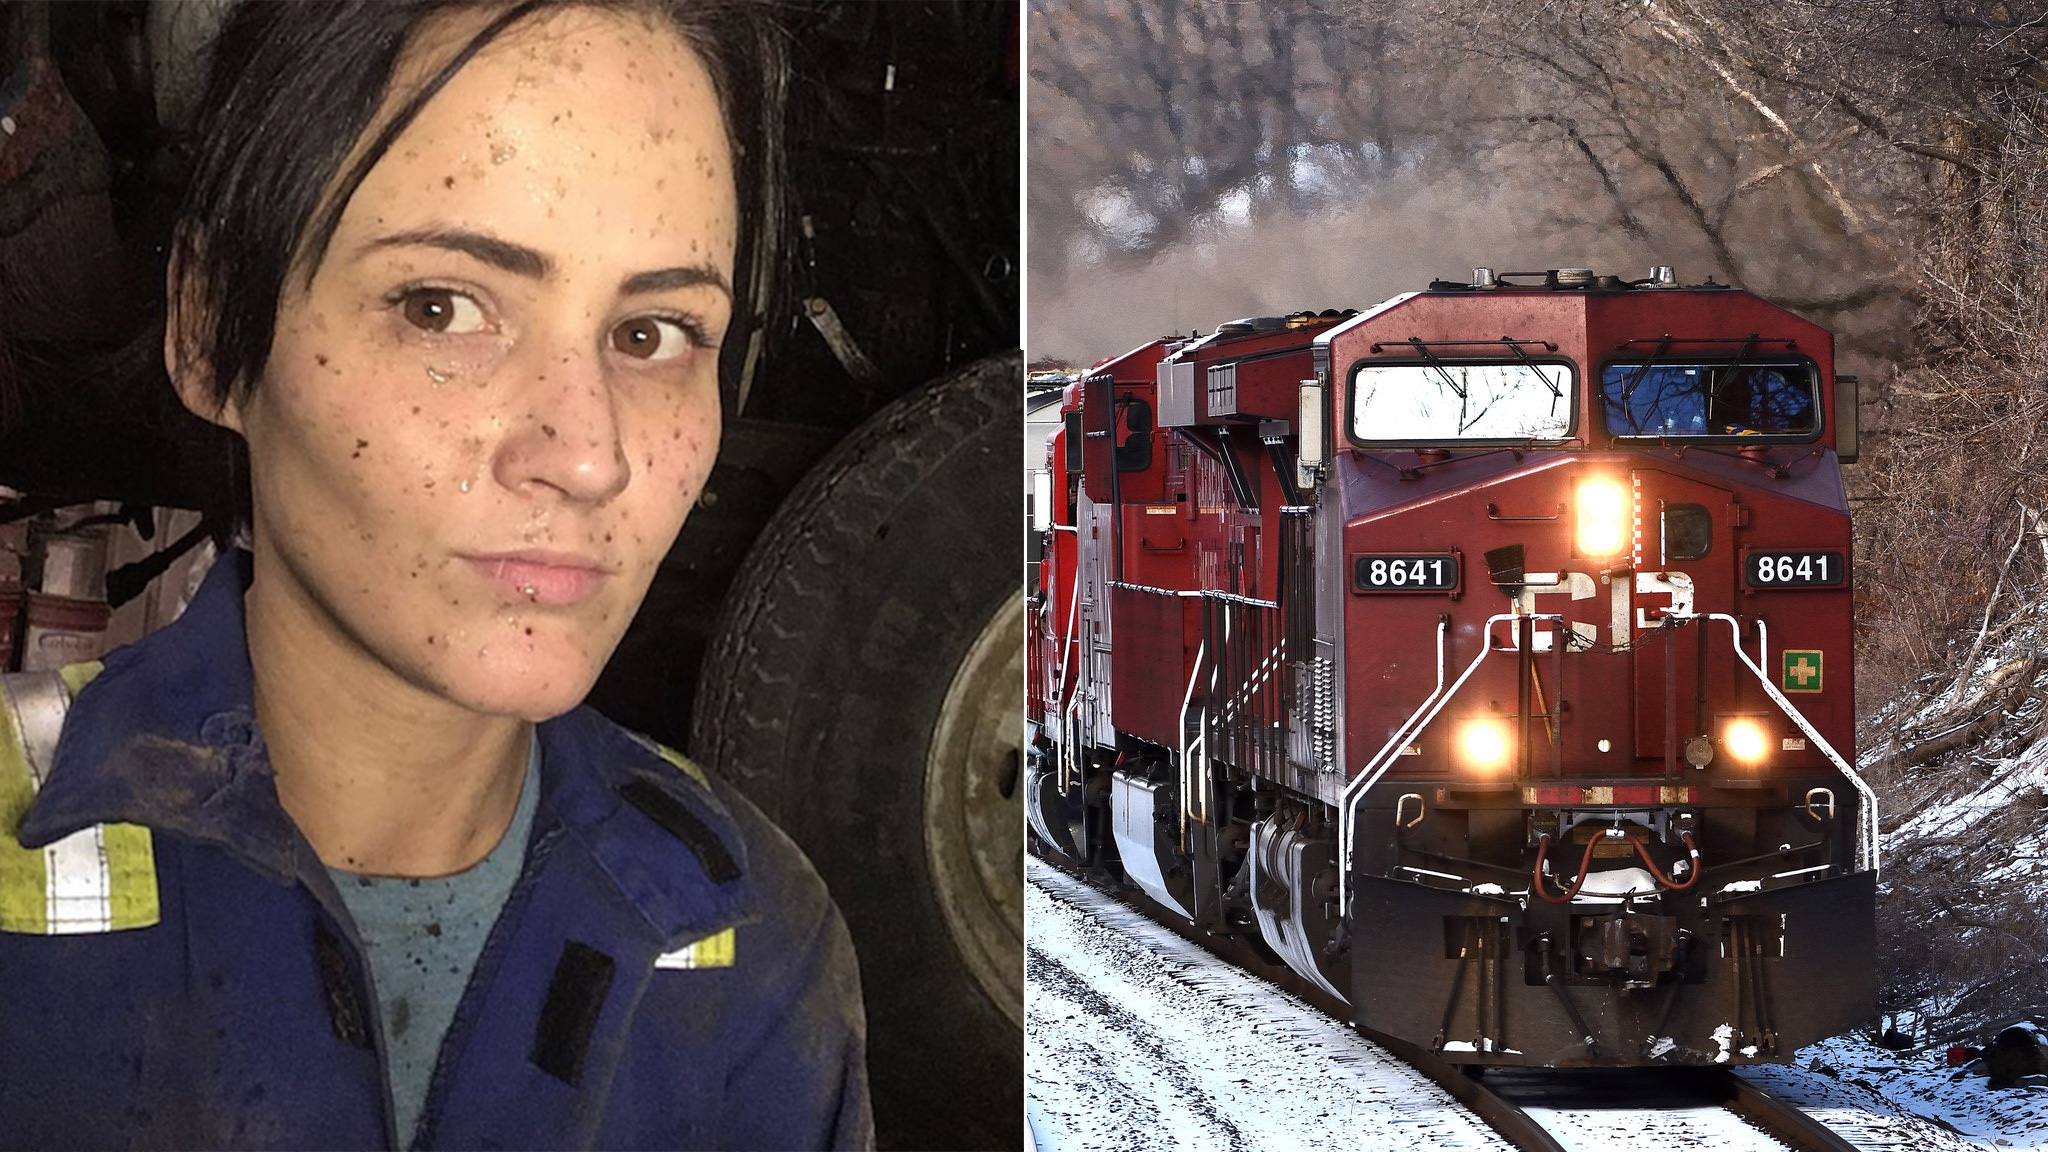 Sexy Photos Seemingly Got a Canadian Train Conductor Fired (Again)